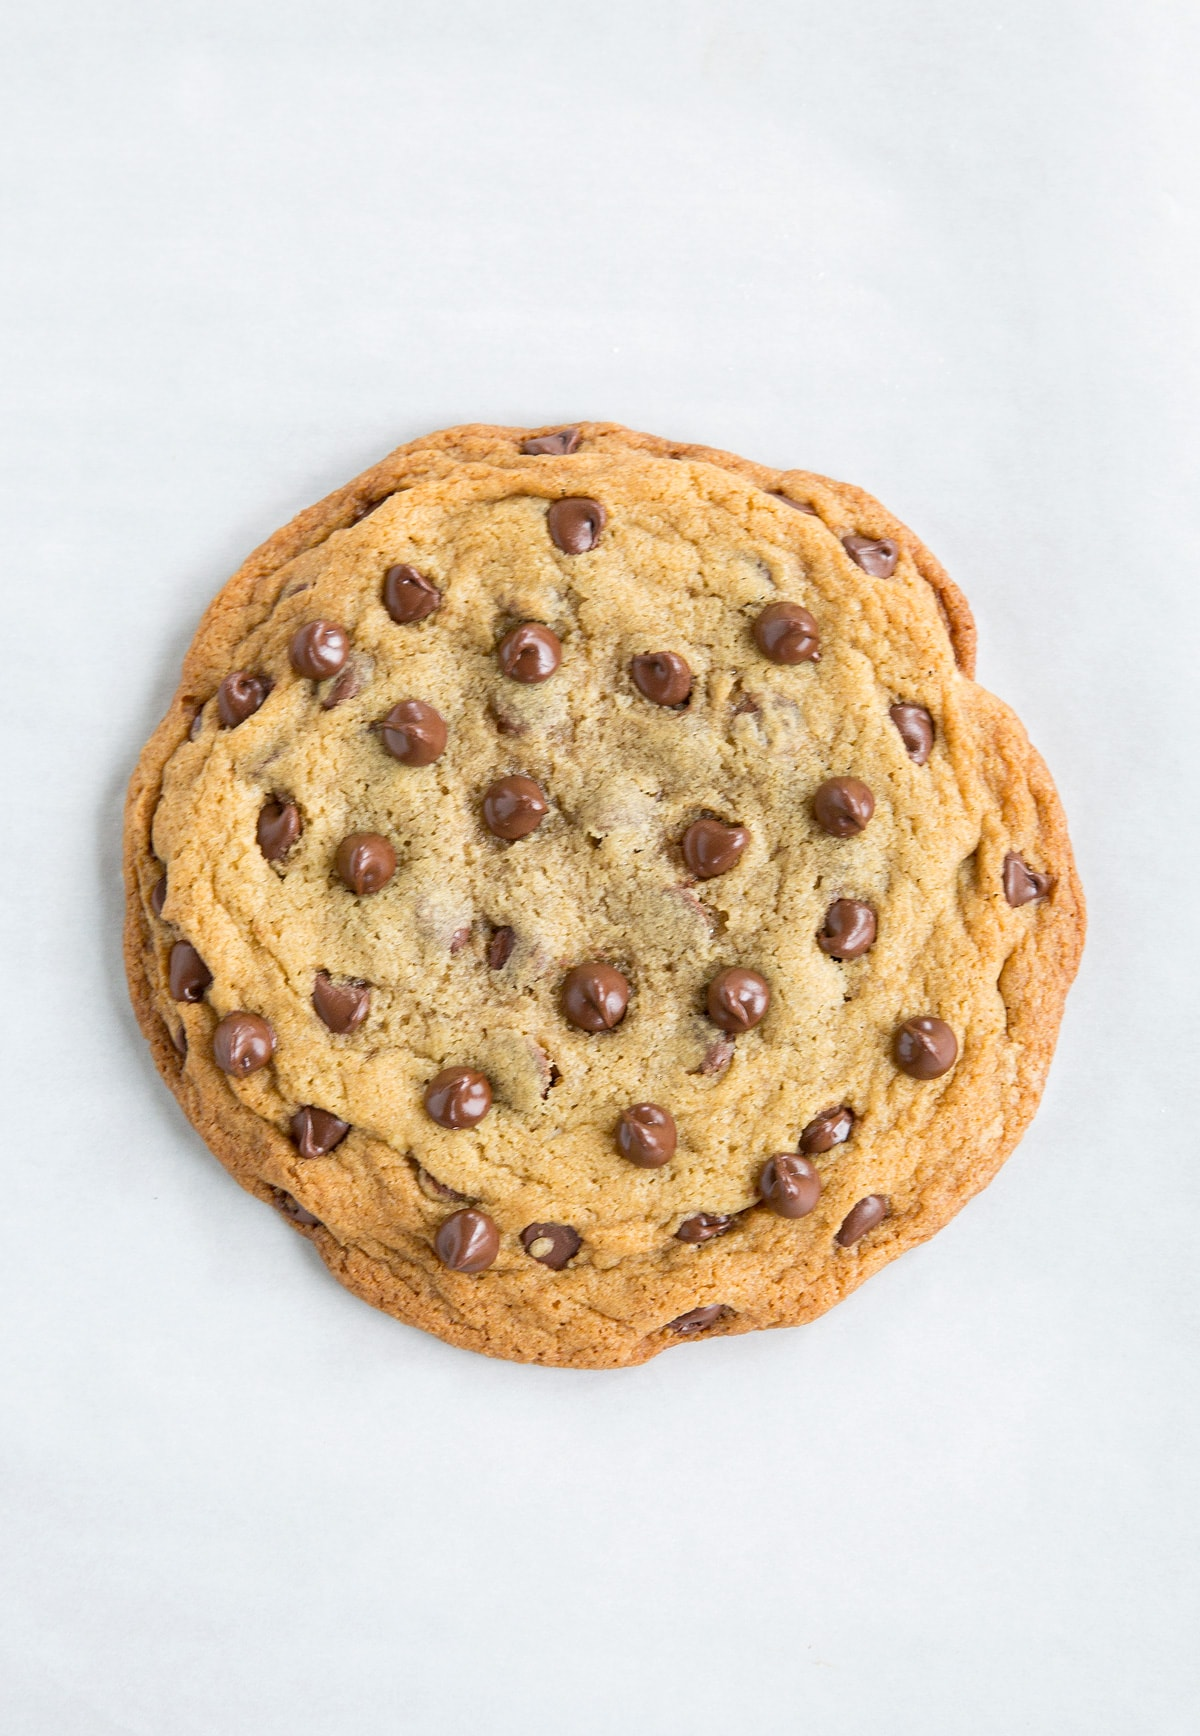 chocolate-chip-cookie-16.jpg